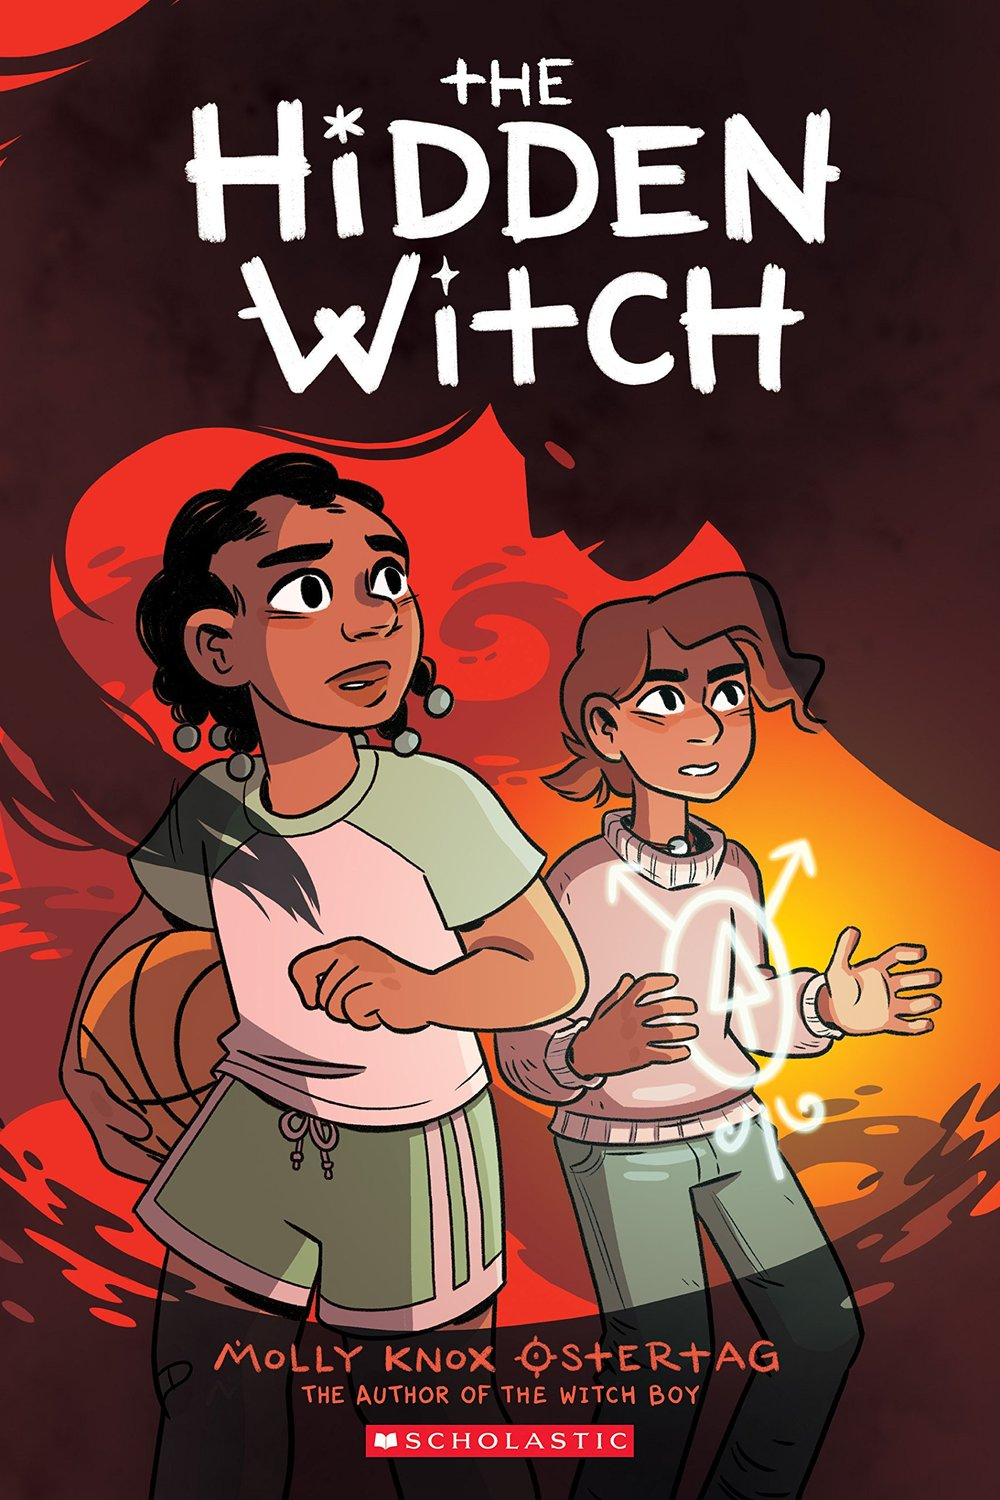 - THE HIDDEN WITCH(Scholastic Press, Oct. 2018)Translations: rights@scholastic.comFrance (Editions Kinaye)Aster and his family are adjusting to his unconventional talent for witchery; unlike the other boys in his family, he isn't a shapeshifter. He's taking classes with his grandmother and helping to keep an eye on his great-uncle whose corrupted magic wreaked havoc on the family.Meanwhile, Aster's friend from the non-magical part of town, Charlie, is having problems of her own -- a curse has tried to attach itself to her. She runs to Aster and escapes it, but now the friends must find the source of the curse before more people -- normal and magical alike -- get hurt.